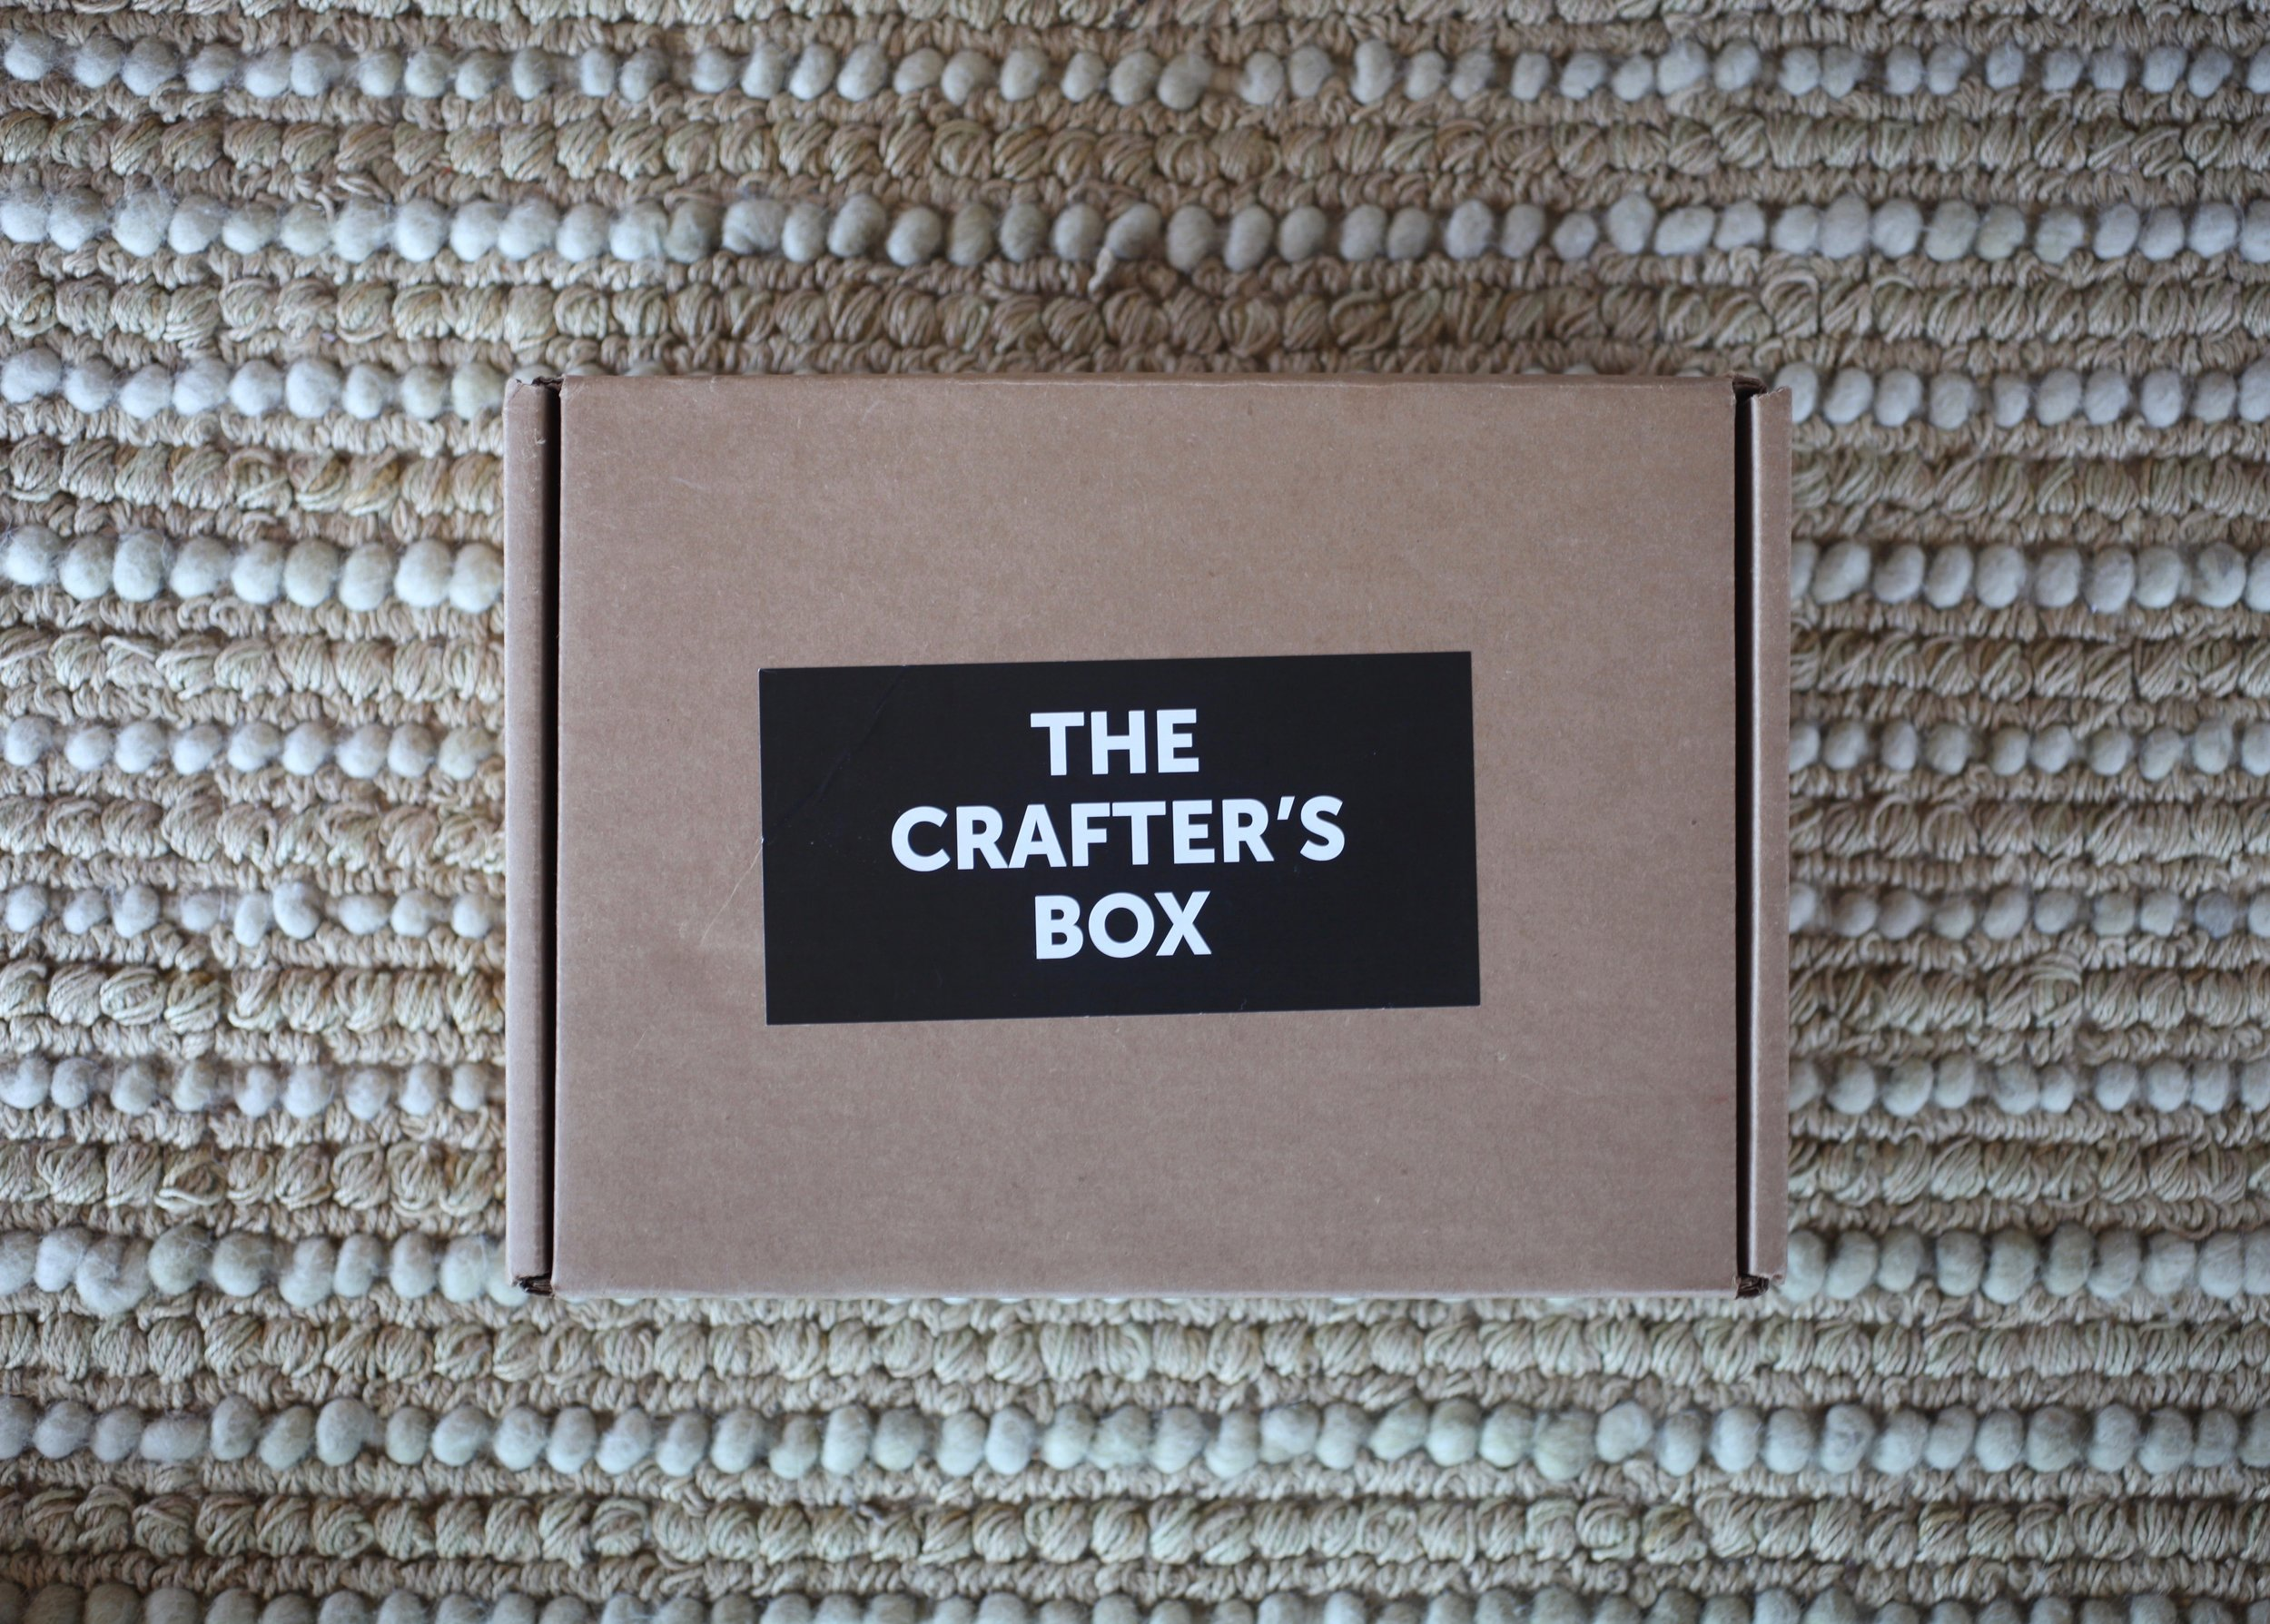 The Crafter's Box is a project-in-a-box delivery service that curates fun craft projects and sends you all the fixins' once a month for $69